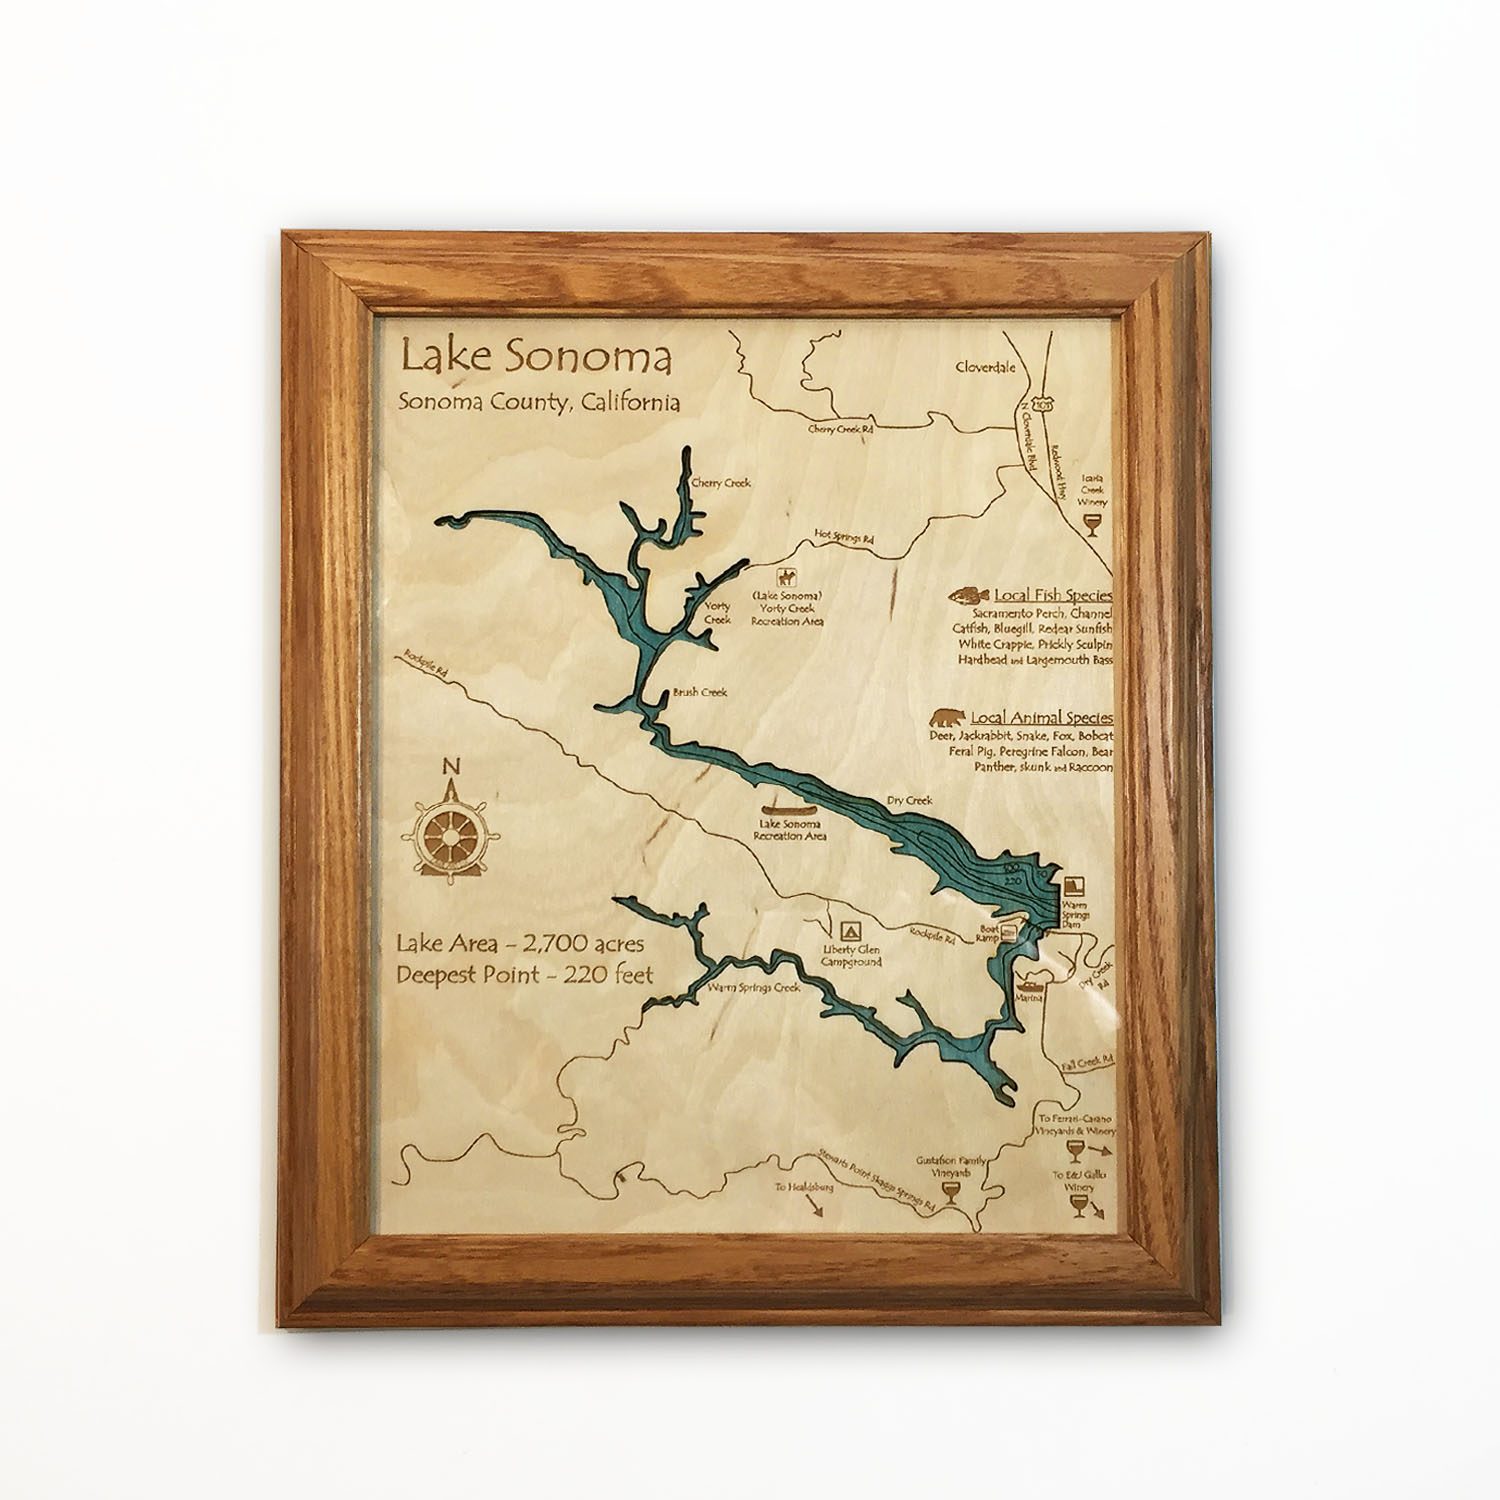 Lake Sonoma CA laser-etched wood map, laser-printed poster wall art